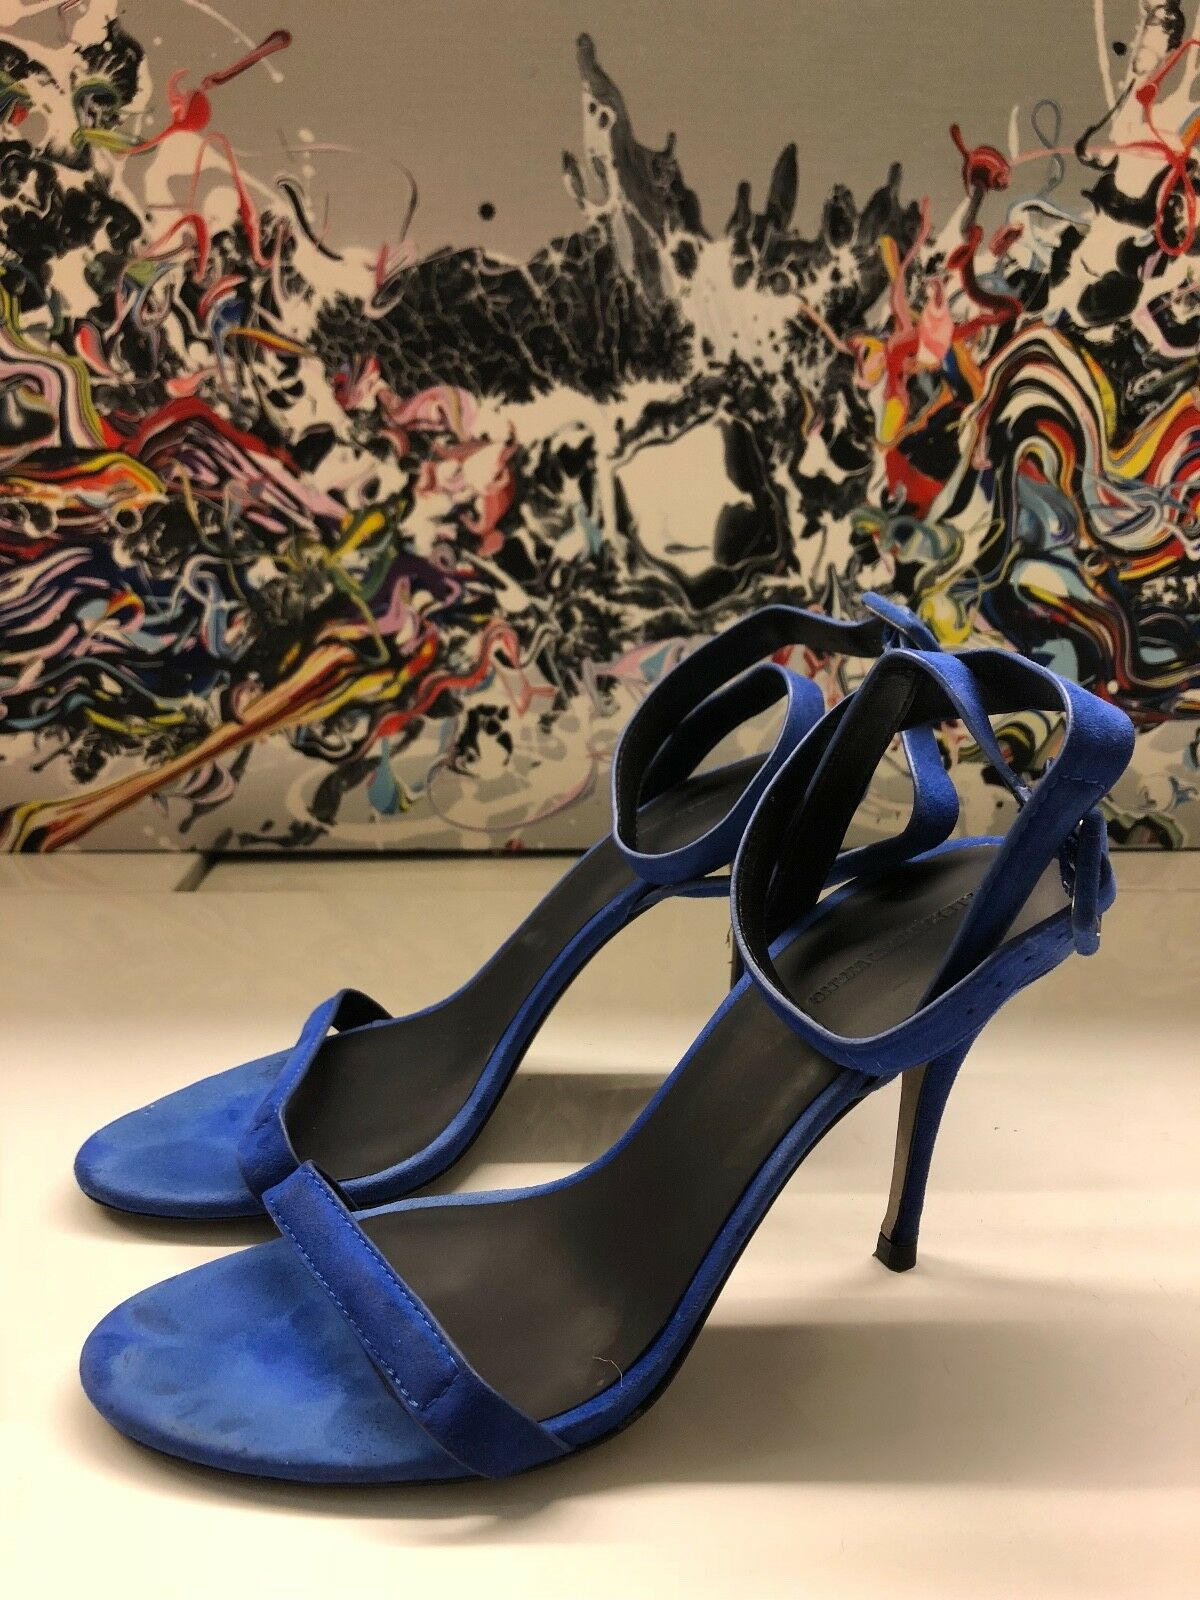 Alexander Wang Suede Leather Strap Heels in bluee  Pumps shoes Cady